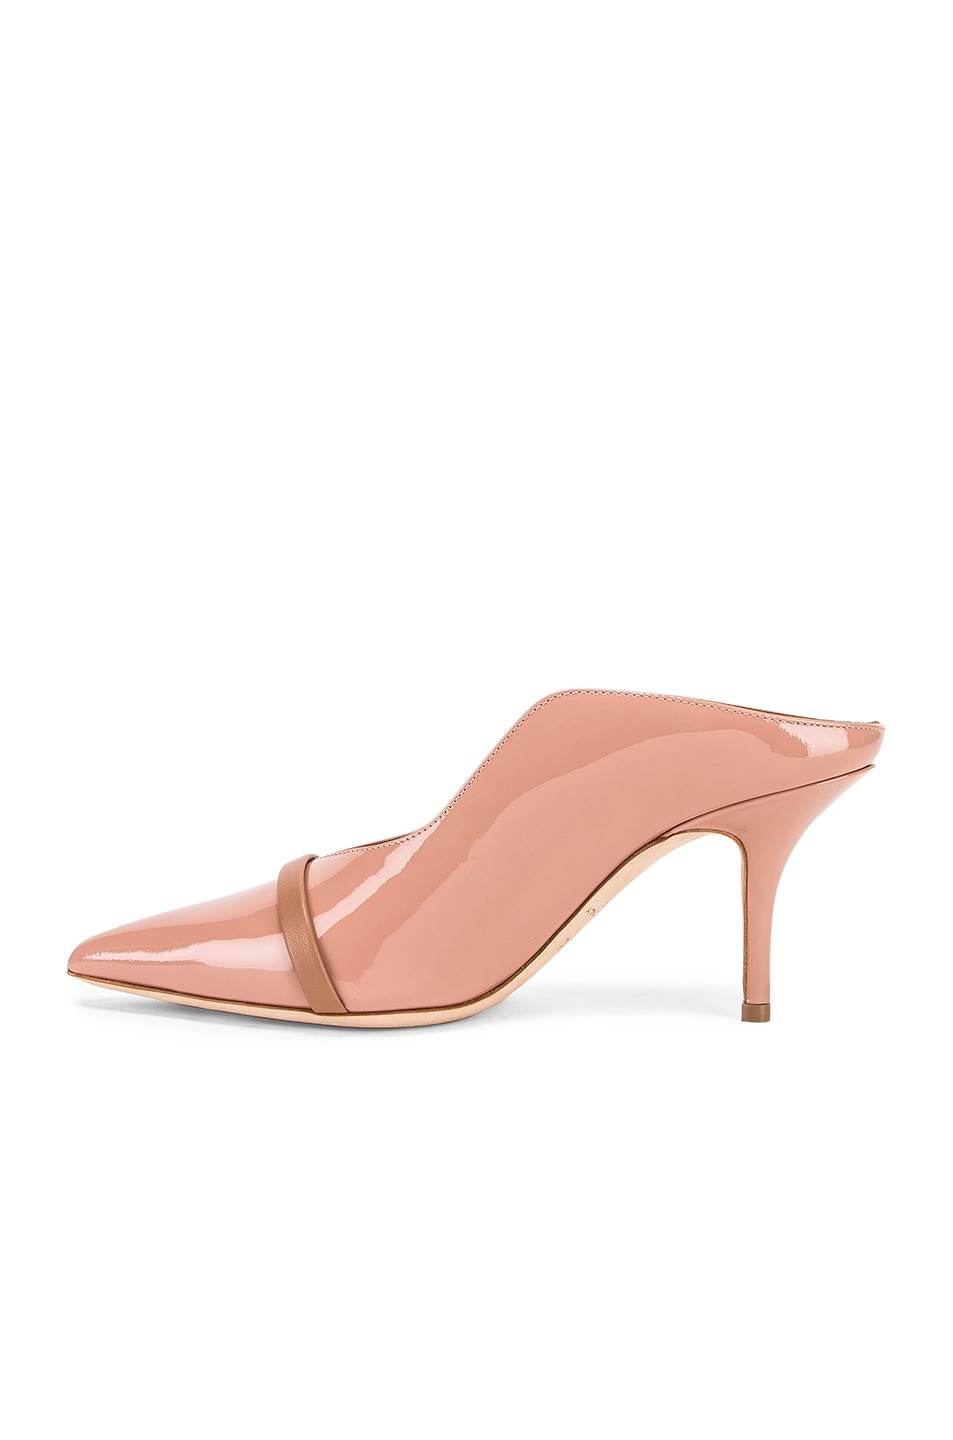 Image 5 of Malone Souliers Constance MS 70 Heel in Nude